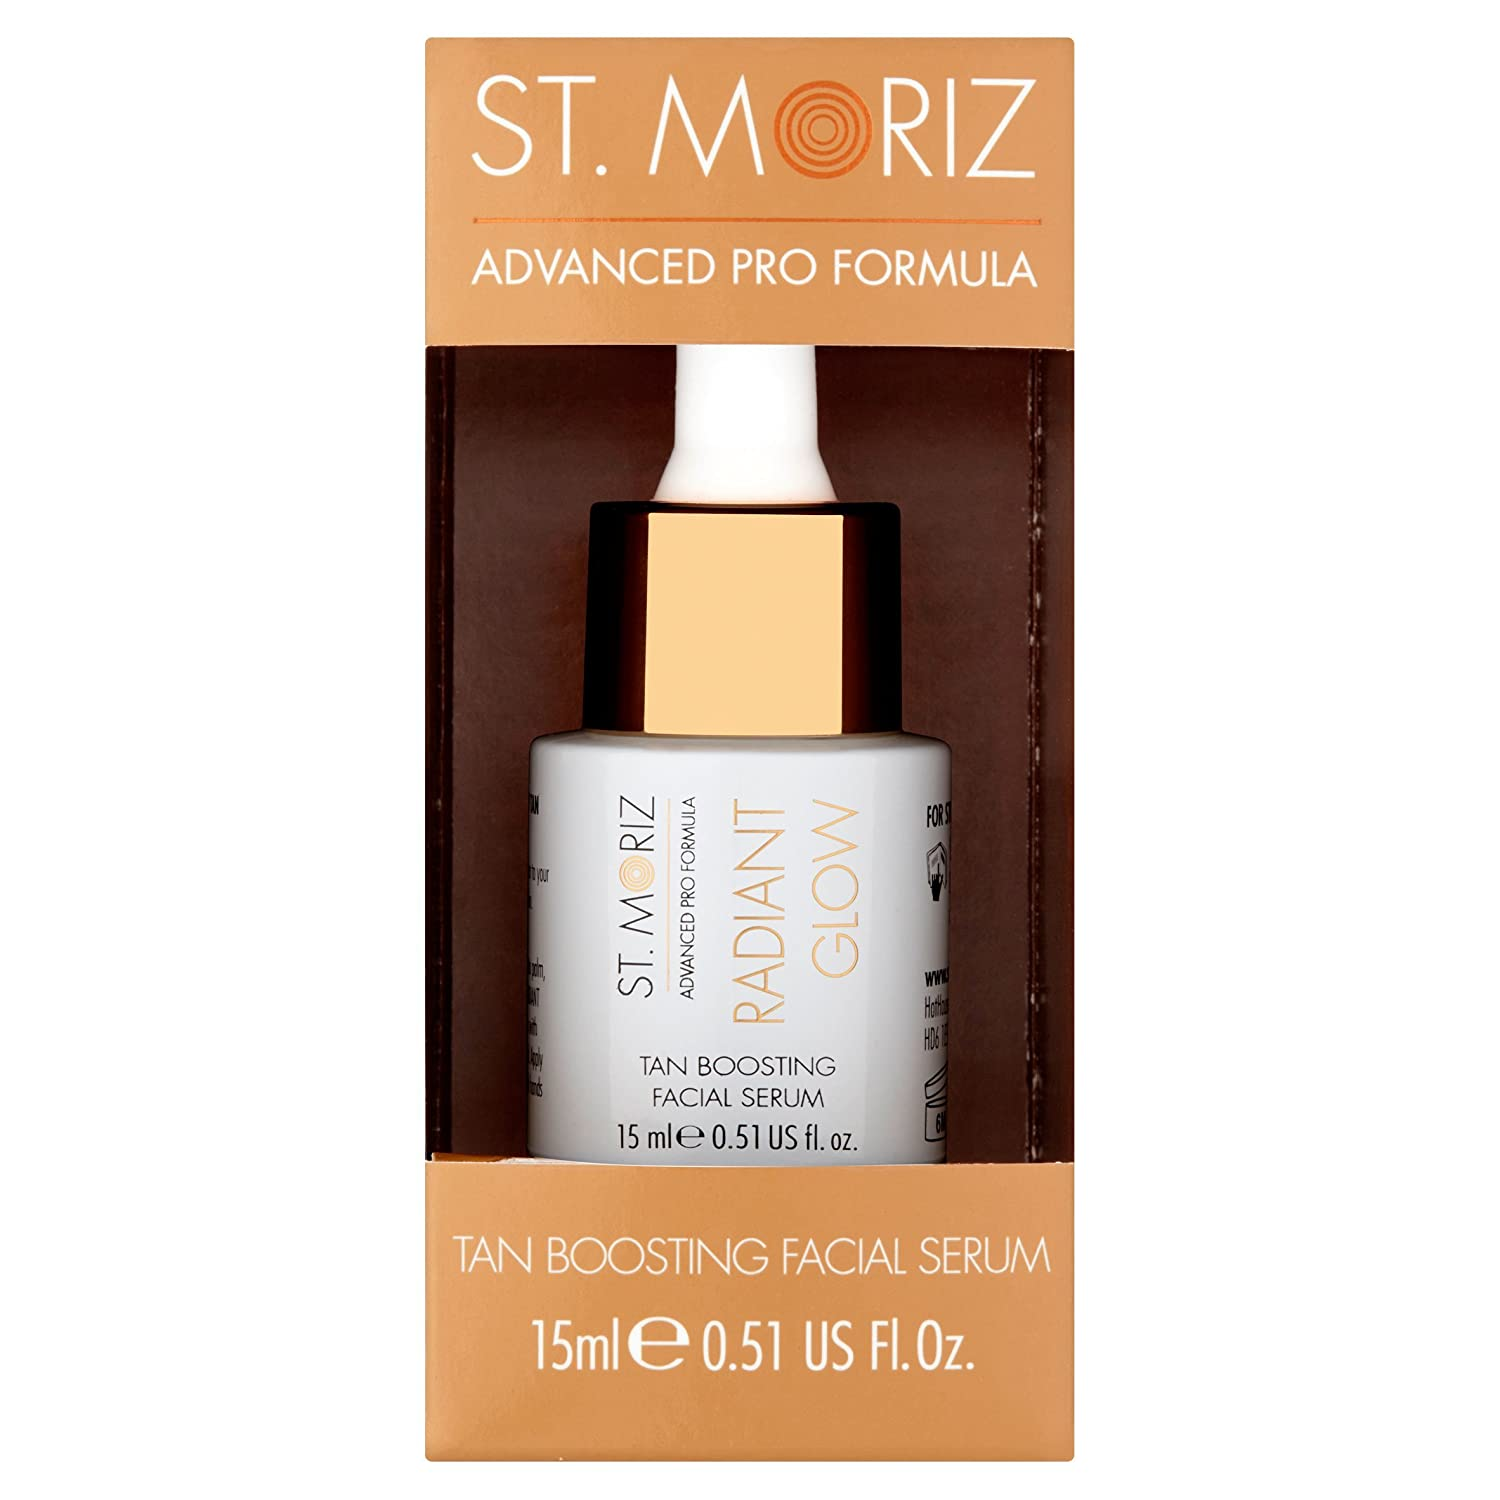 St Moriz Advanced Pro Formula Face Booster Serum Hothouse 269.17099999999999